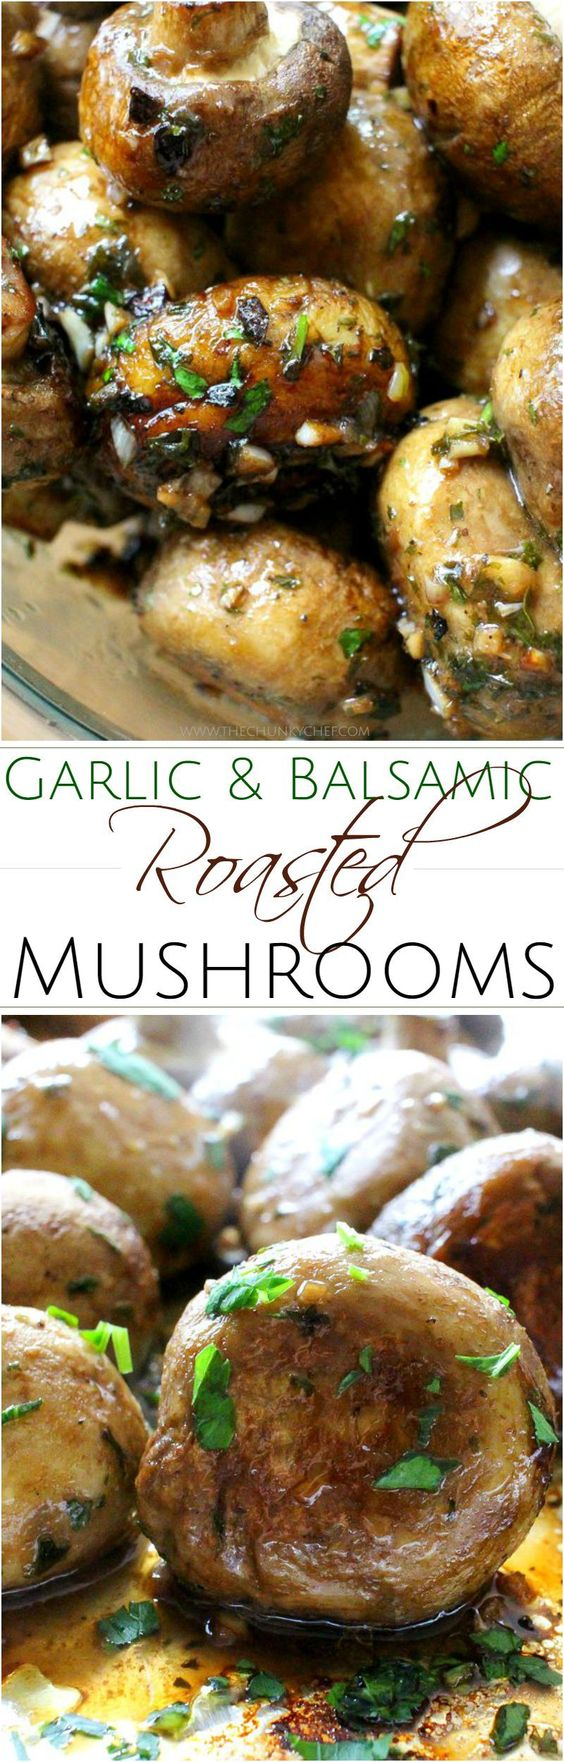 "Garlic and Balsamic Roasted Mushrooms Vegetable Side Dish Recipe via The Chunky Chef ""Fresh mushrooms are tossed in a flavorful vinaigrette and roasted to perfection... savory oven roasted mushrooms, on your table in 30 minutes!"""